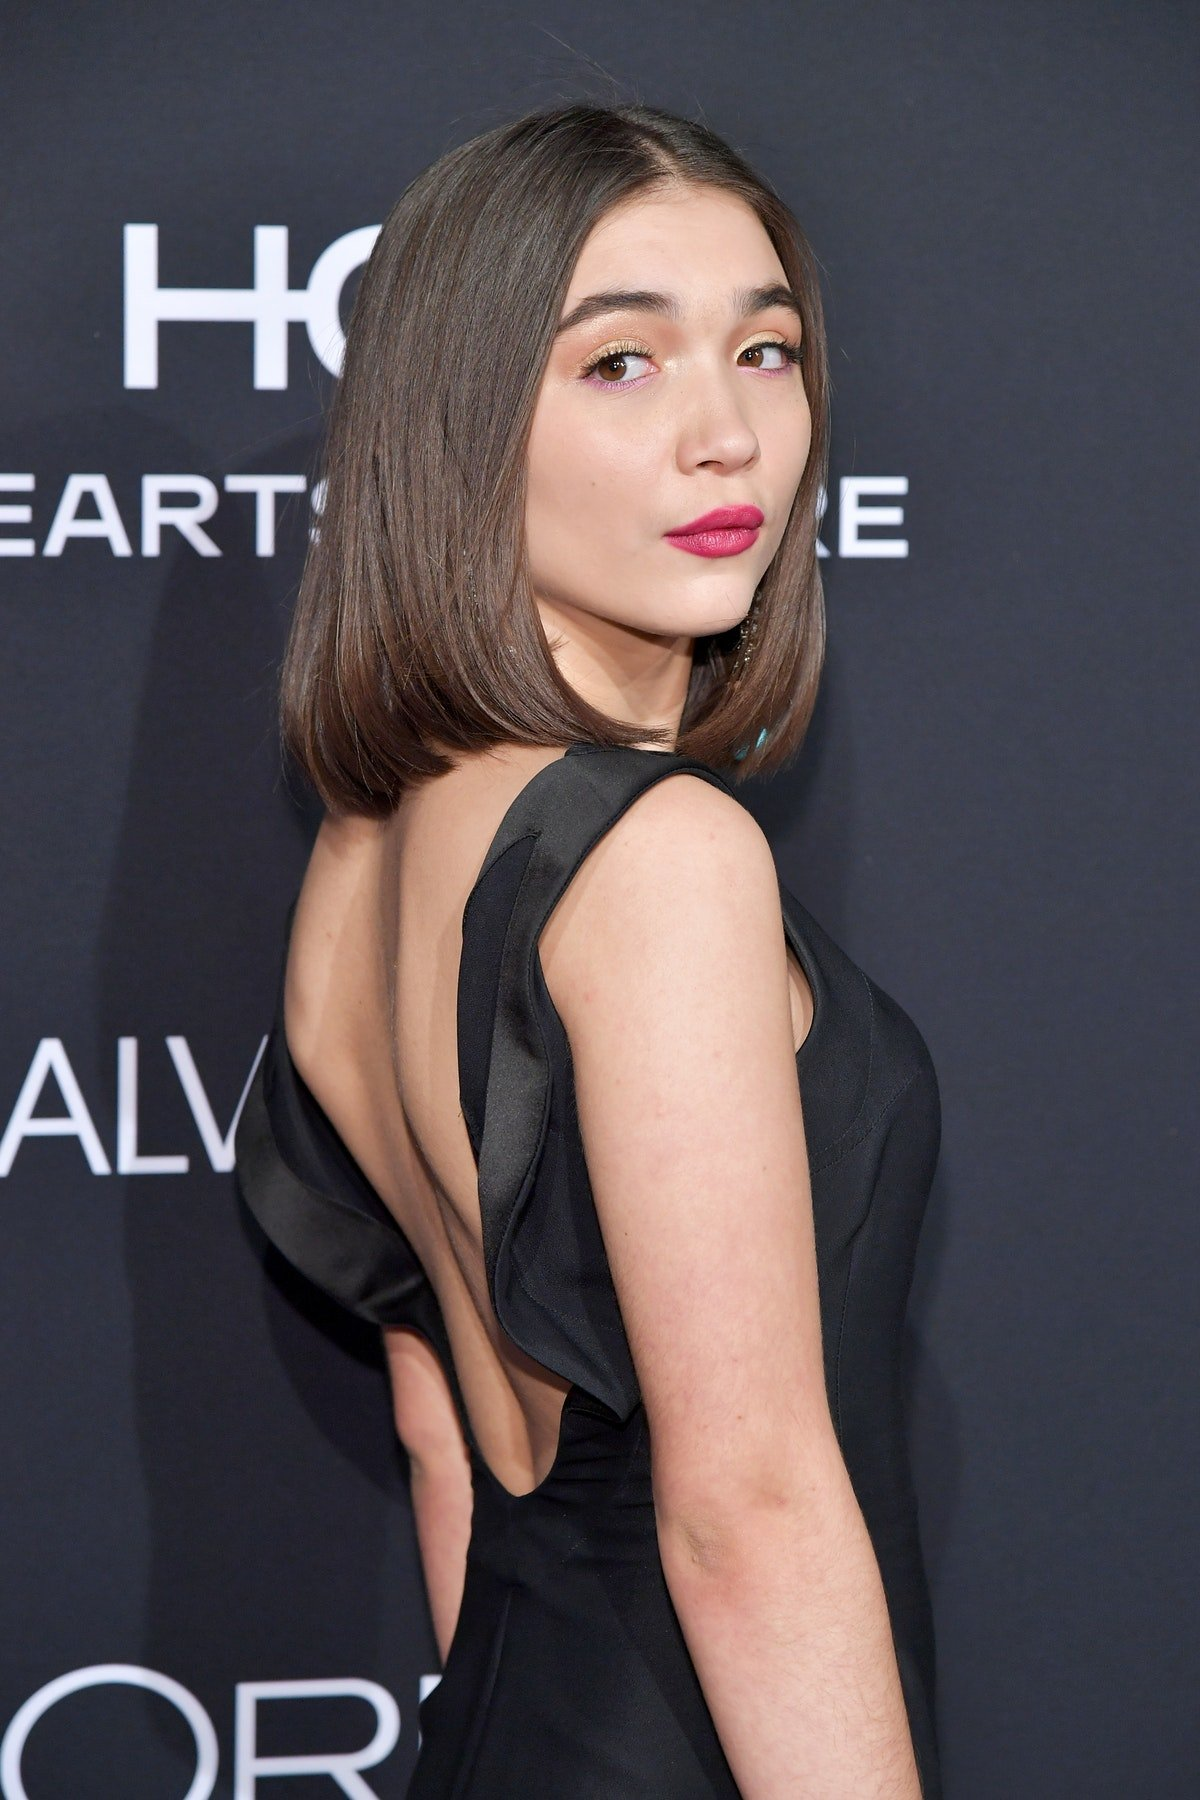 Rowan Blanchard Just Cut Off ALL Of Her Hair & She Looks Totally Different